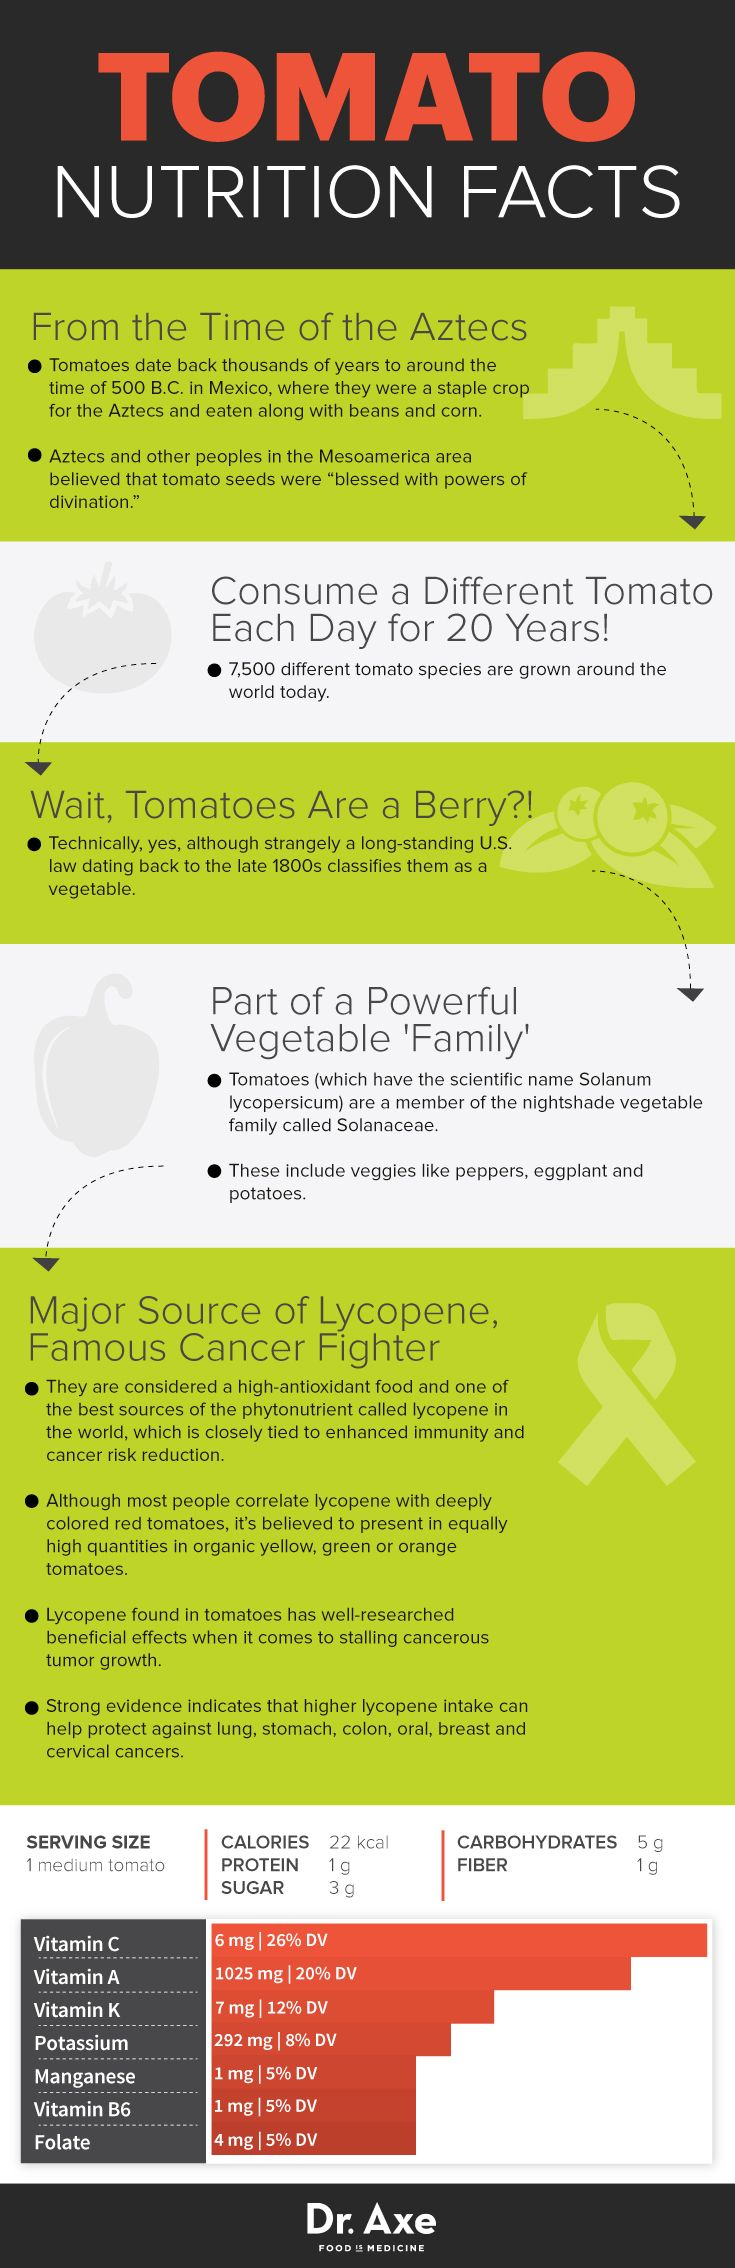 Tomato nutrition facts - Dr. Axe http://www.draxe.com #health #holistic #natural